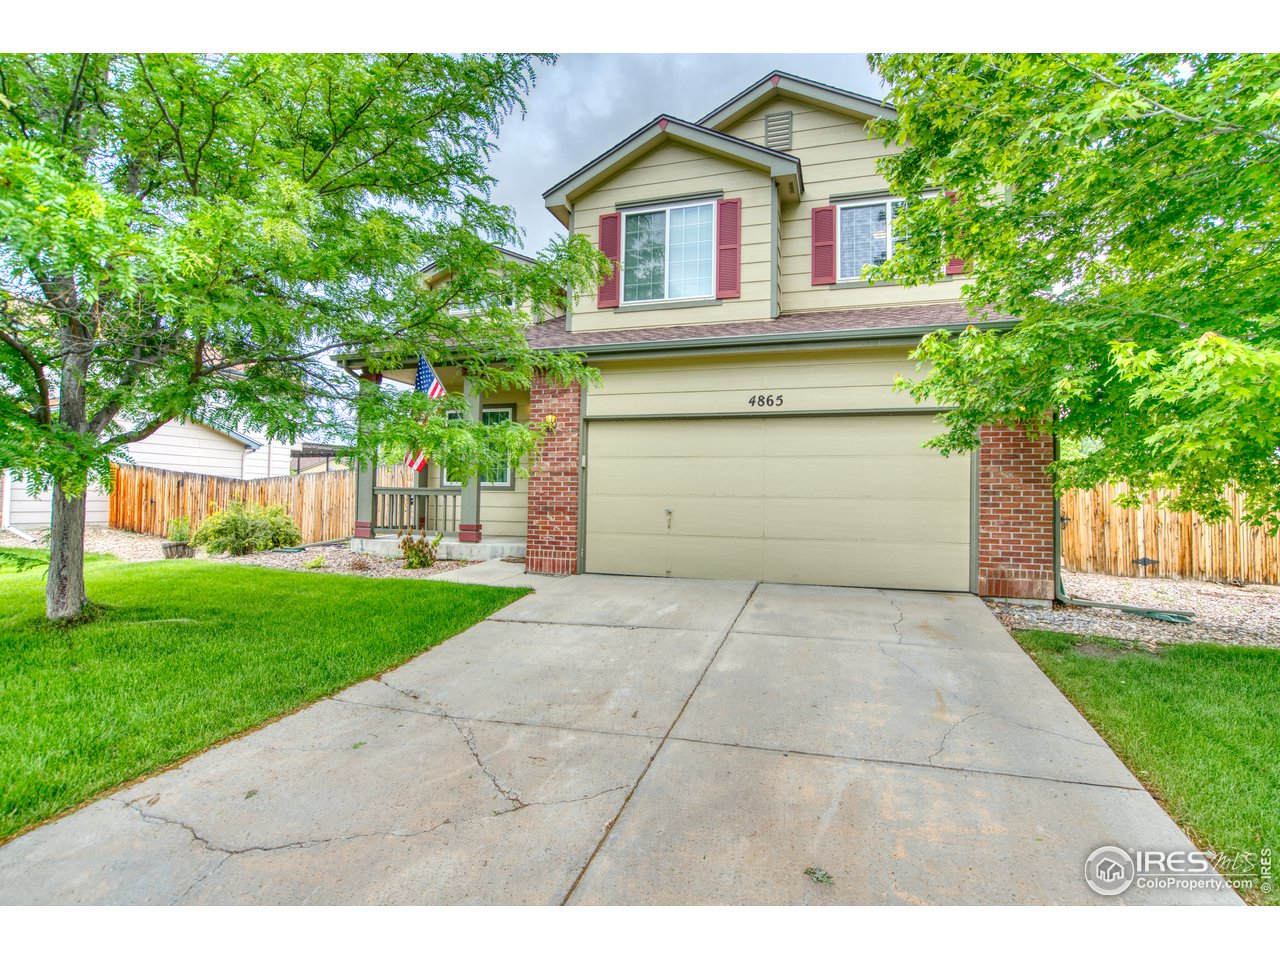 4865 W 125th Ave, Broomfield CO 80020